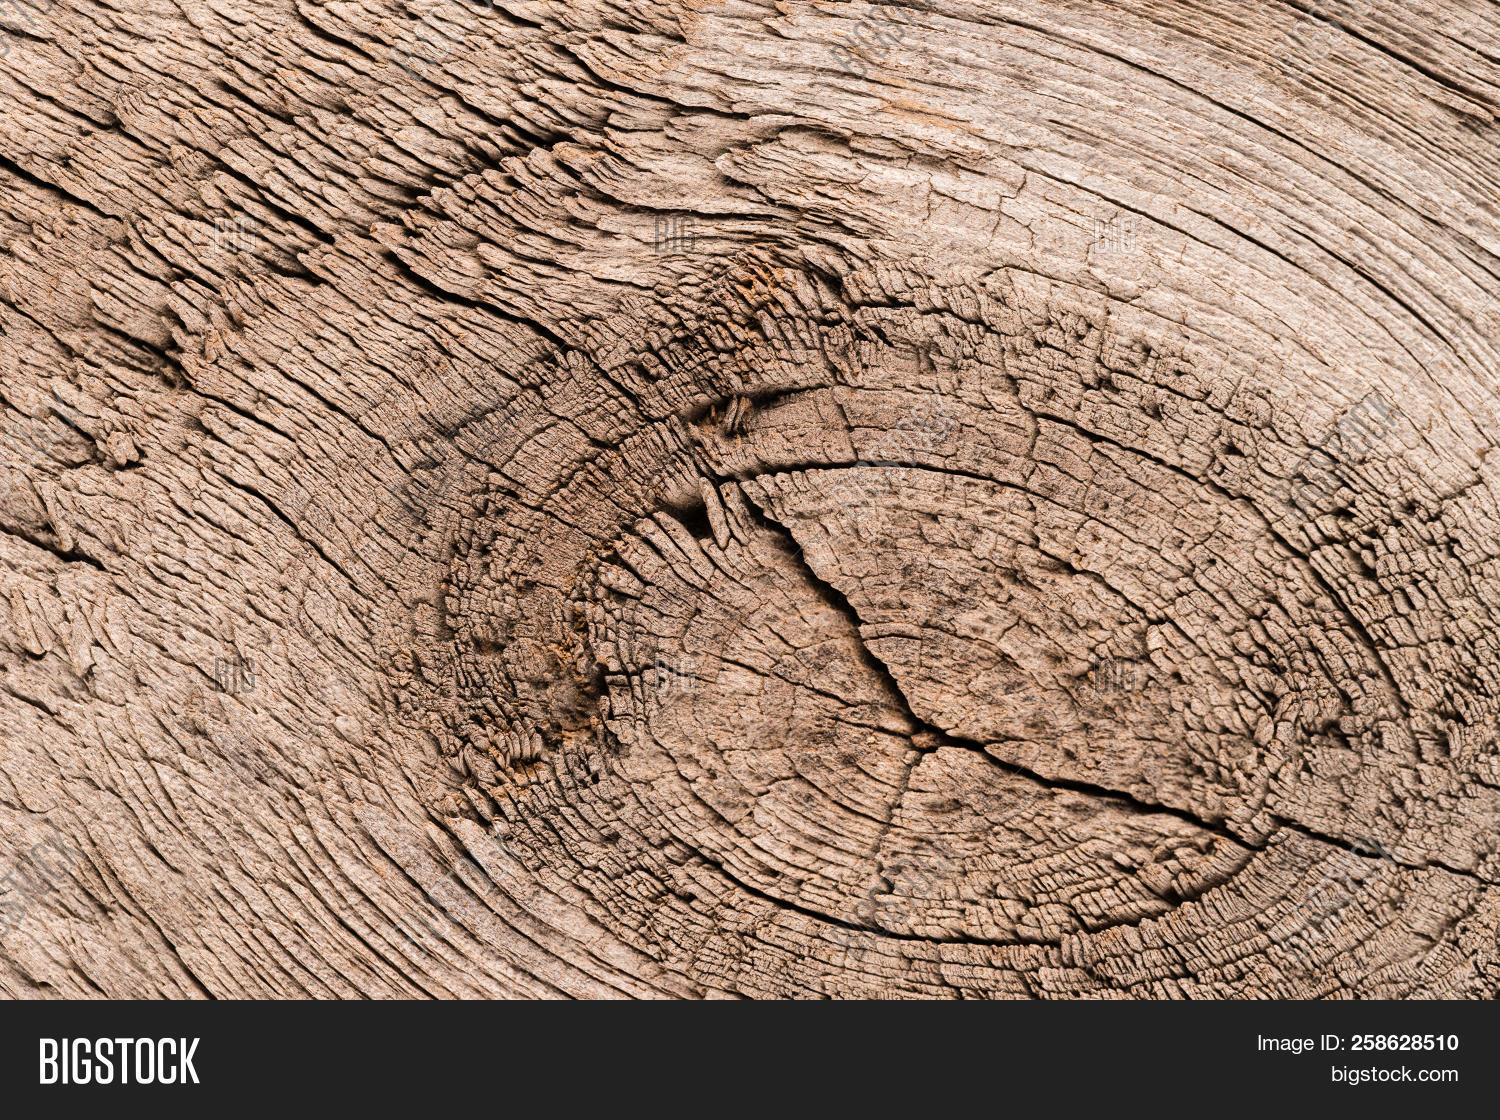 Wood Texture Brushed Image Photo Free Trial Bigstock